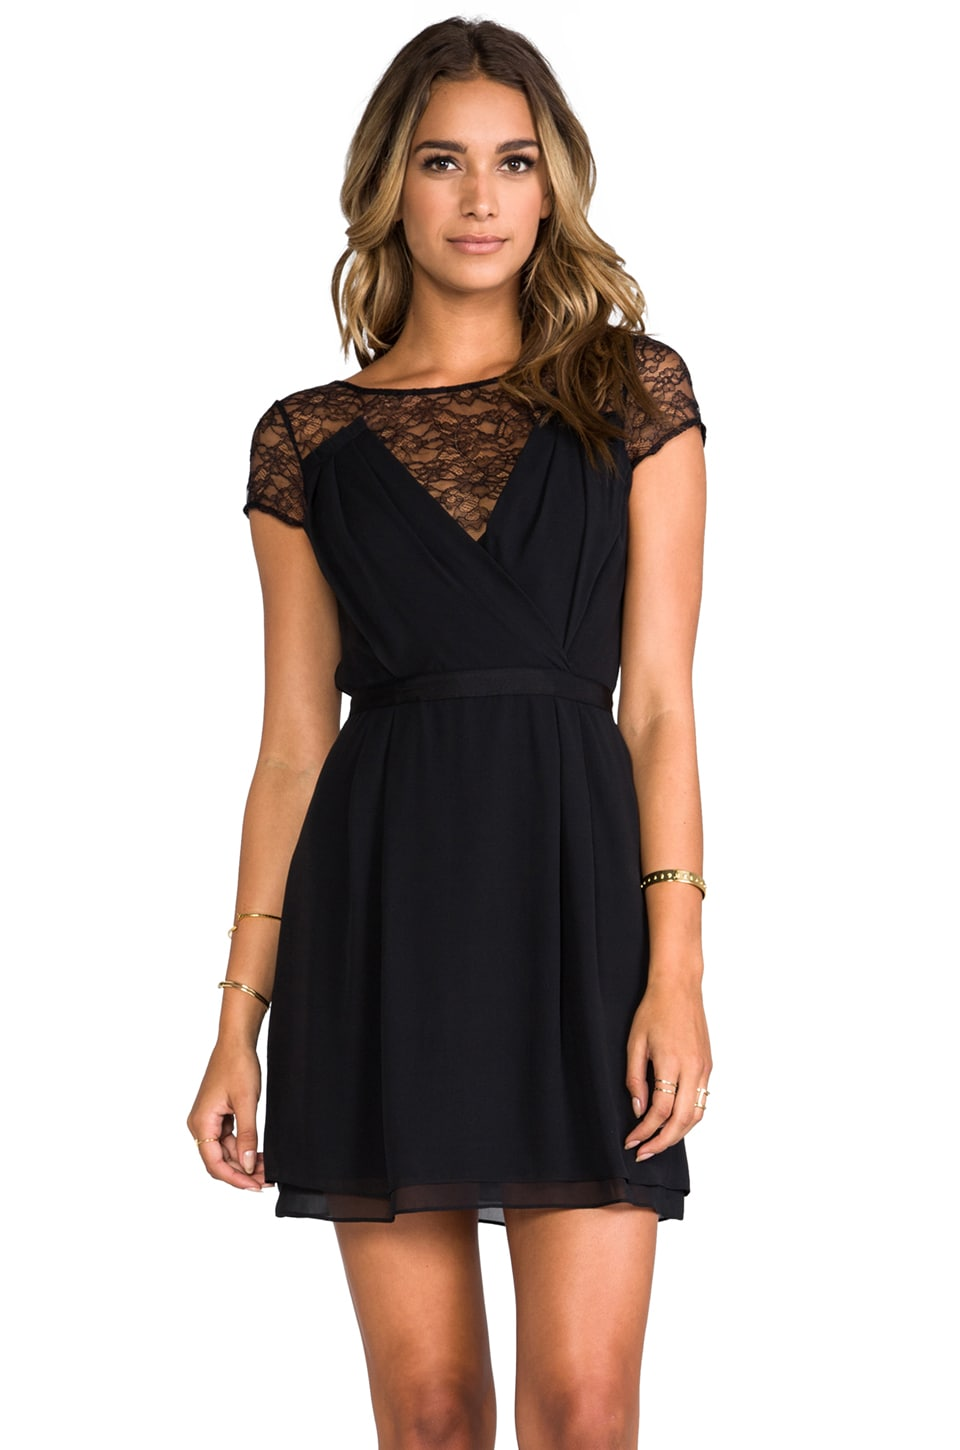 Diane von Furstenberg Holli Dress in Black